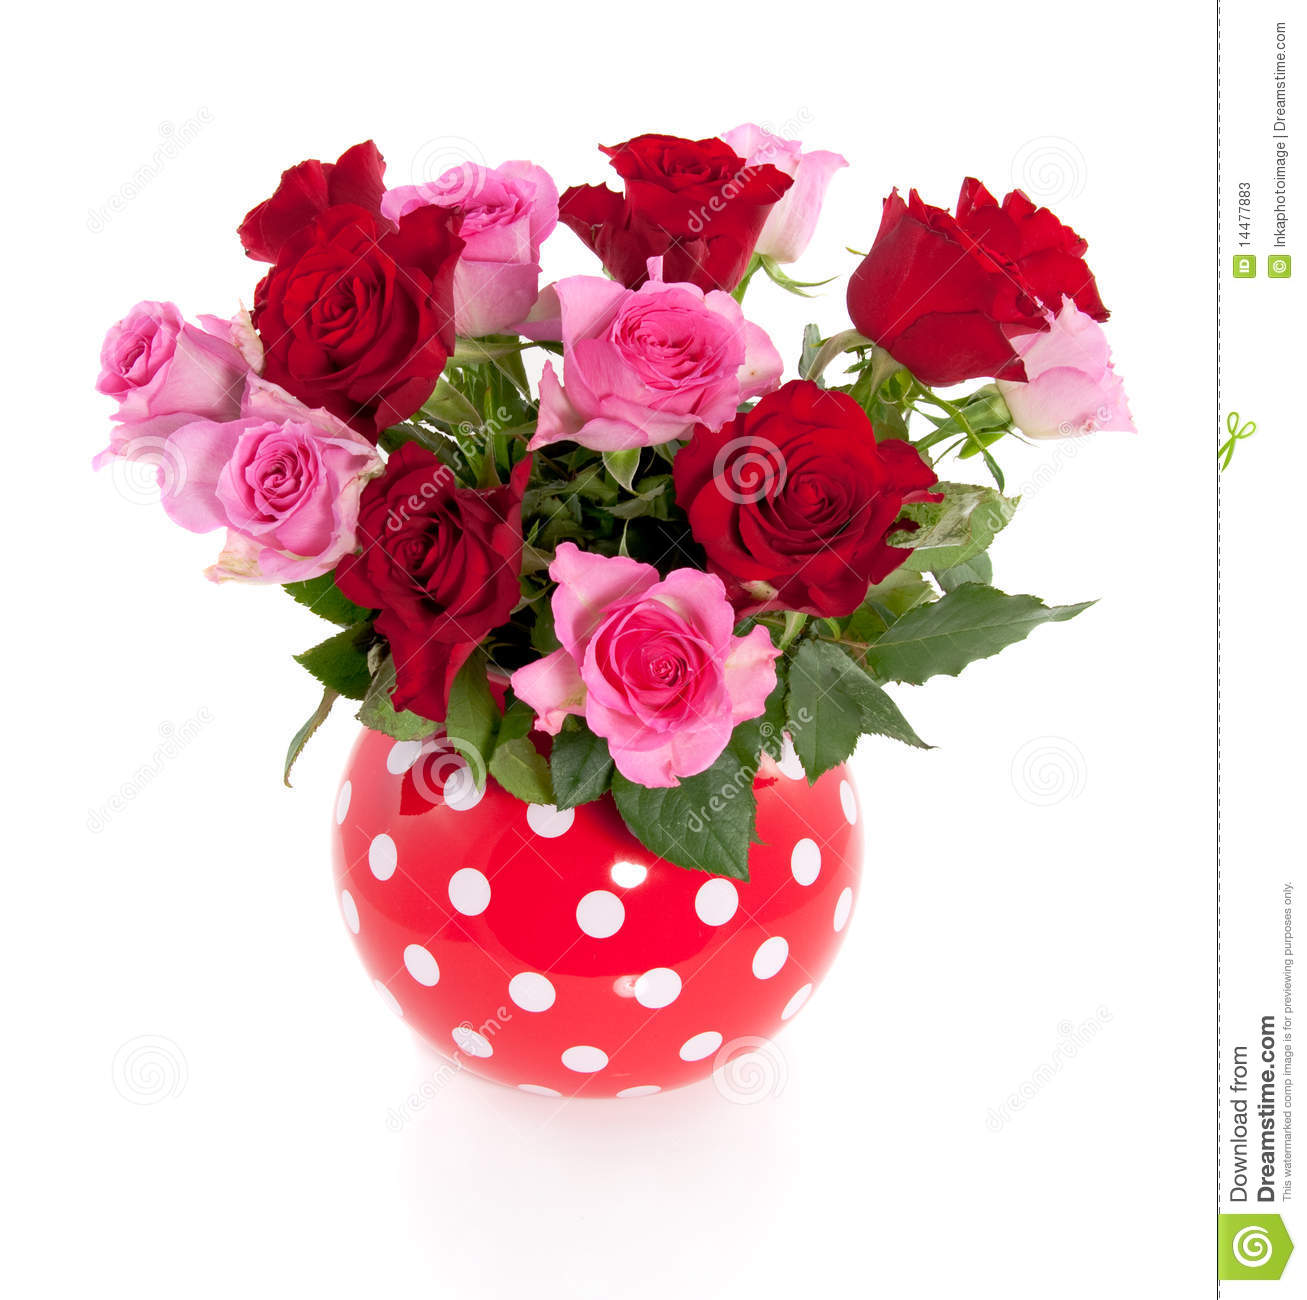 Bouquet Of Pink And Red Roses Stock Photos - Image: 14477883